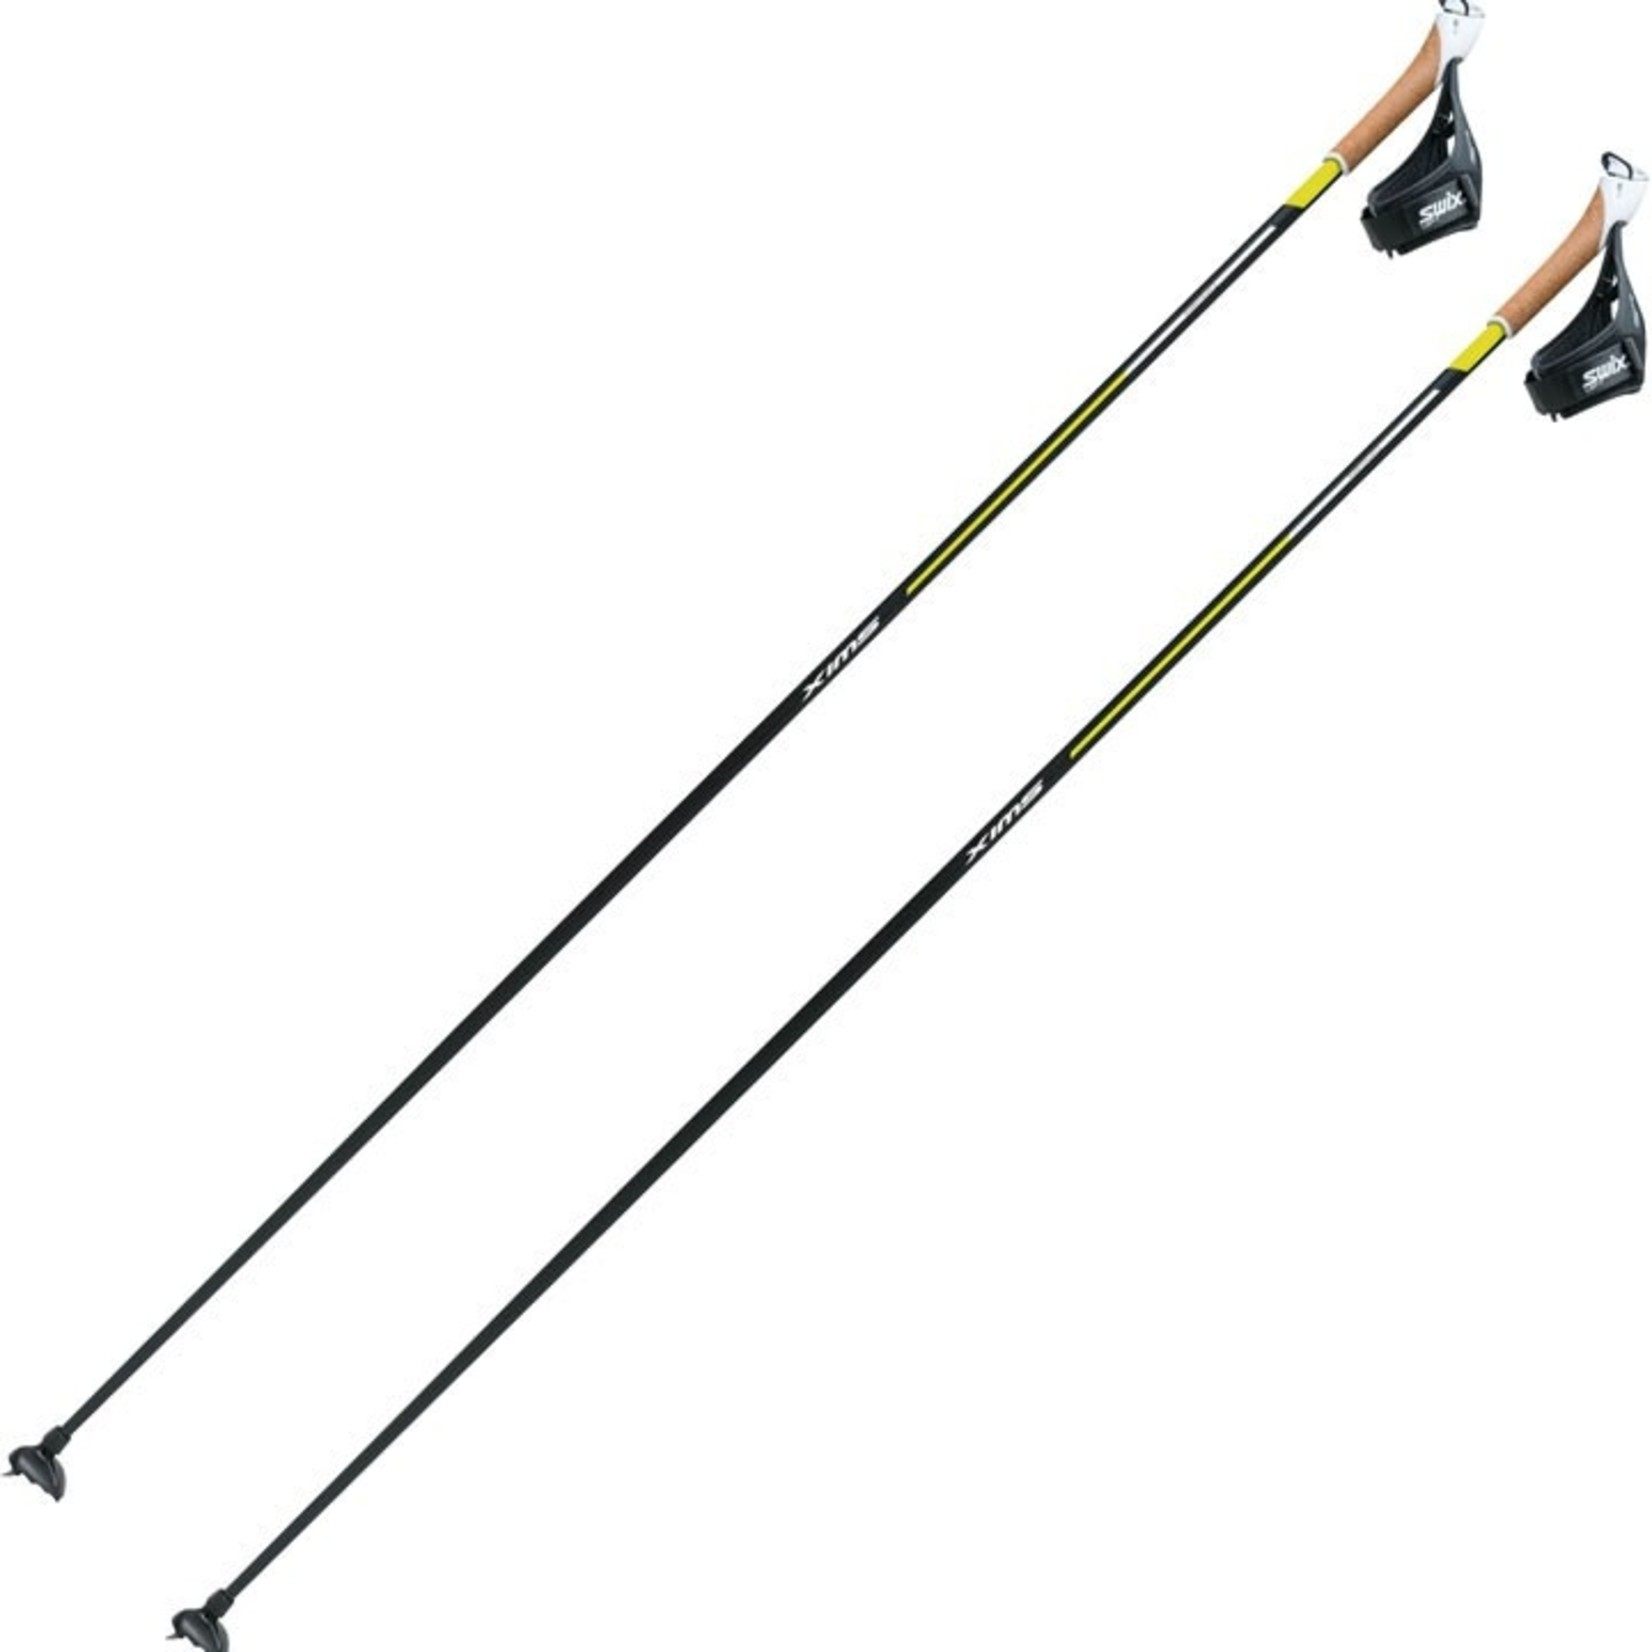 Swix Swix Quantum Five Junior Poles